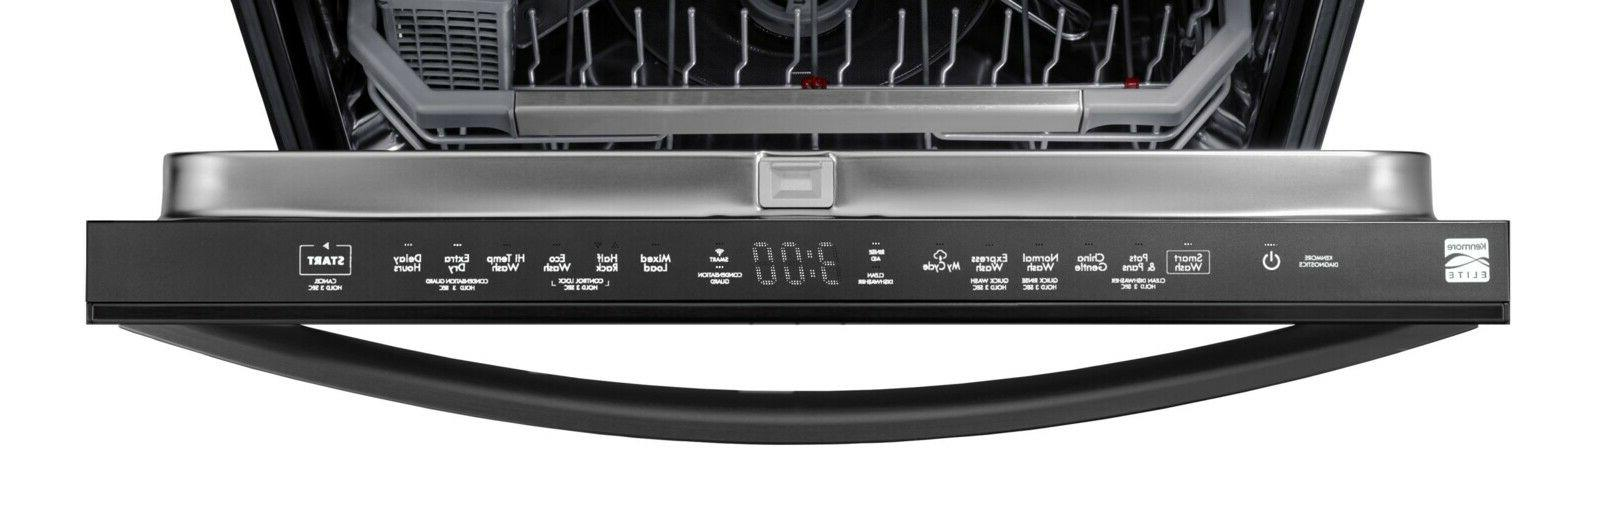 Kenmore Kenmore 14677 Smart with Third Rack